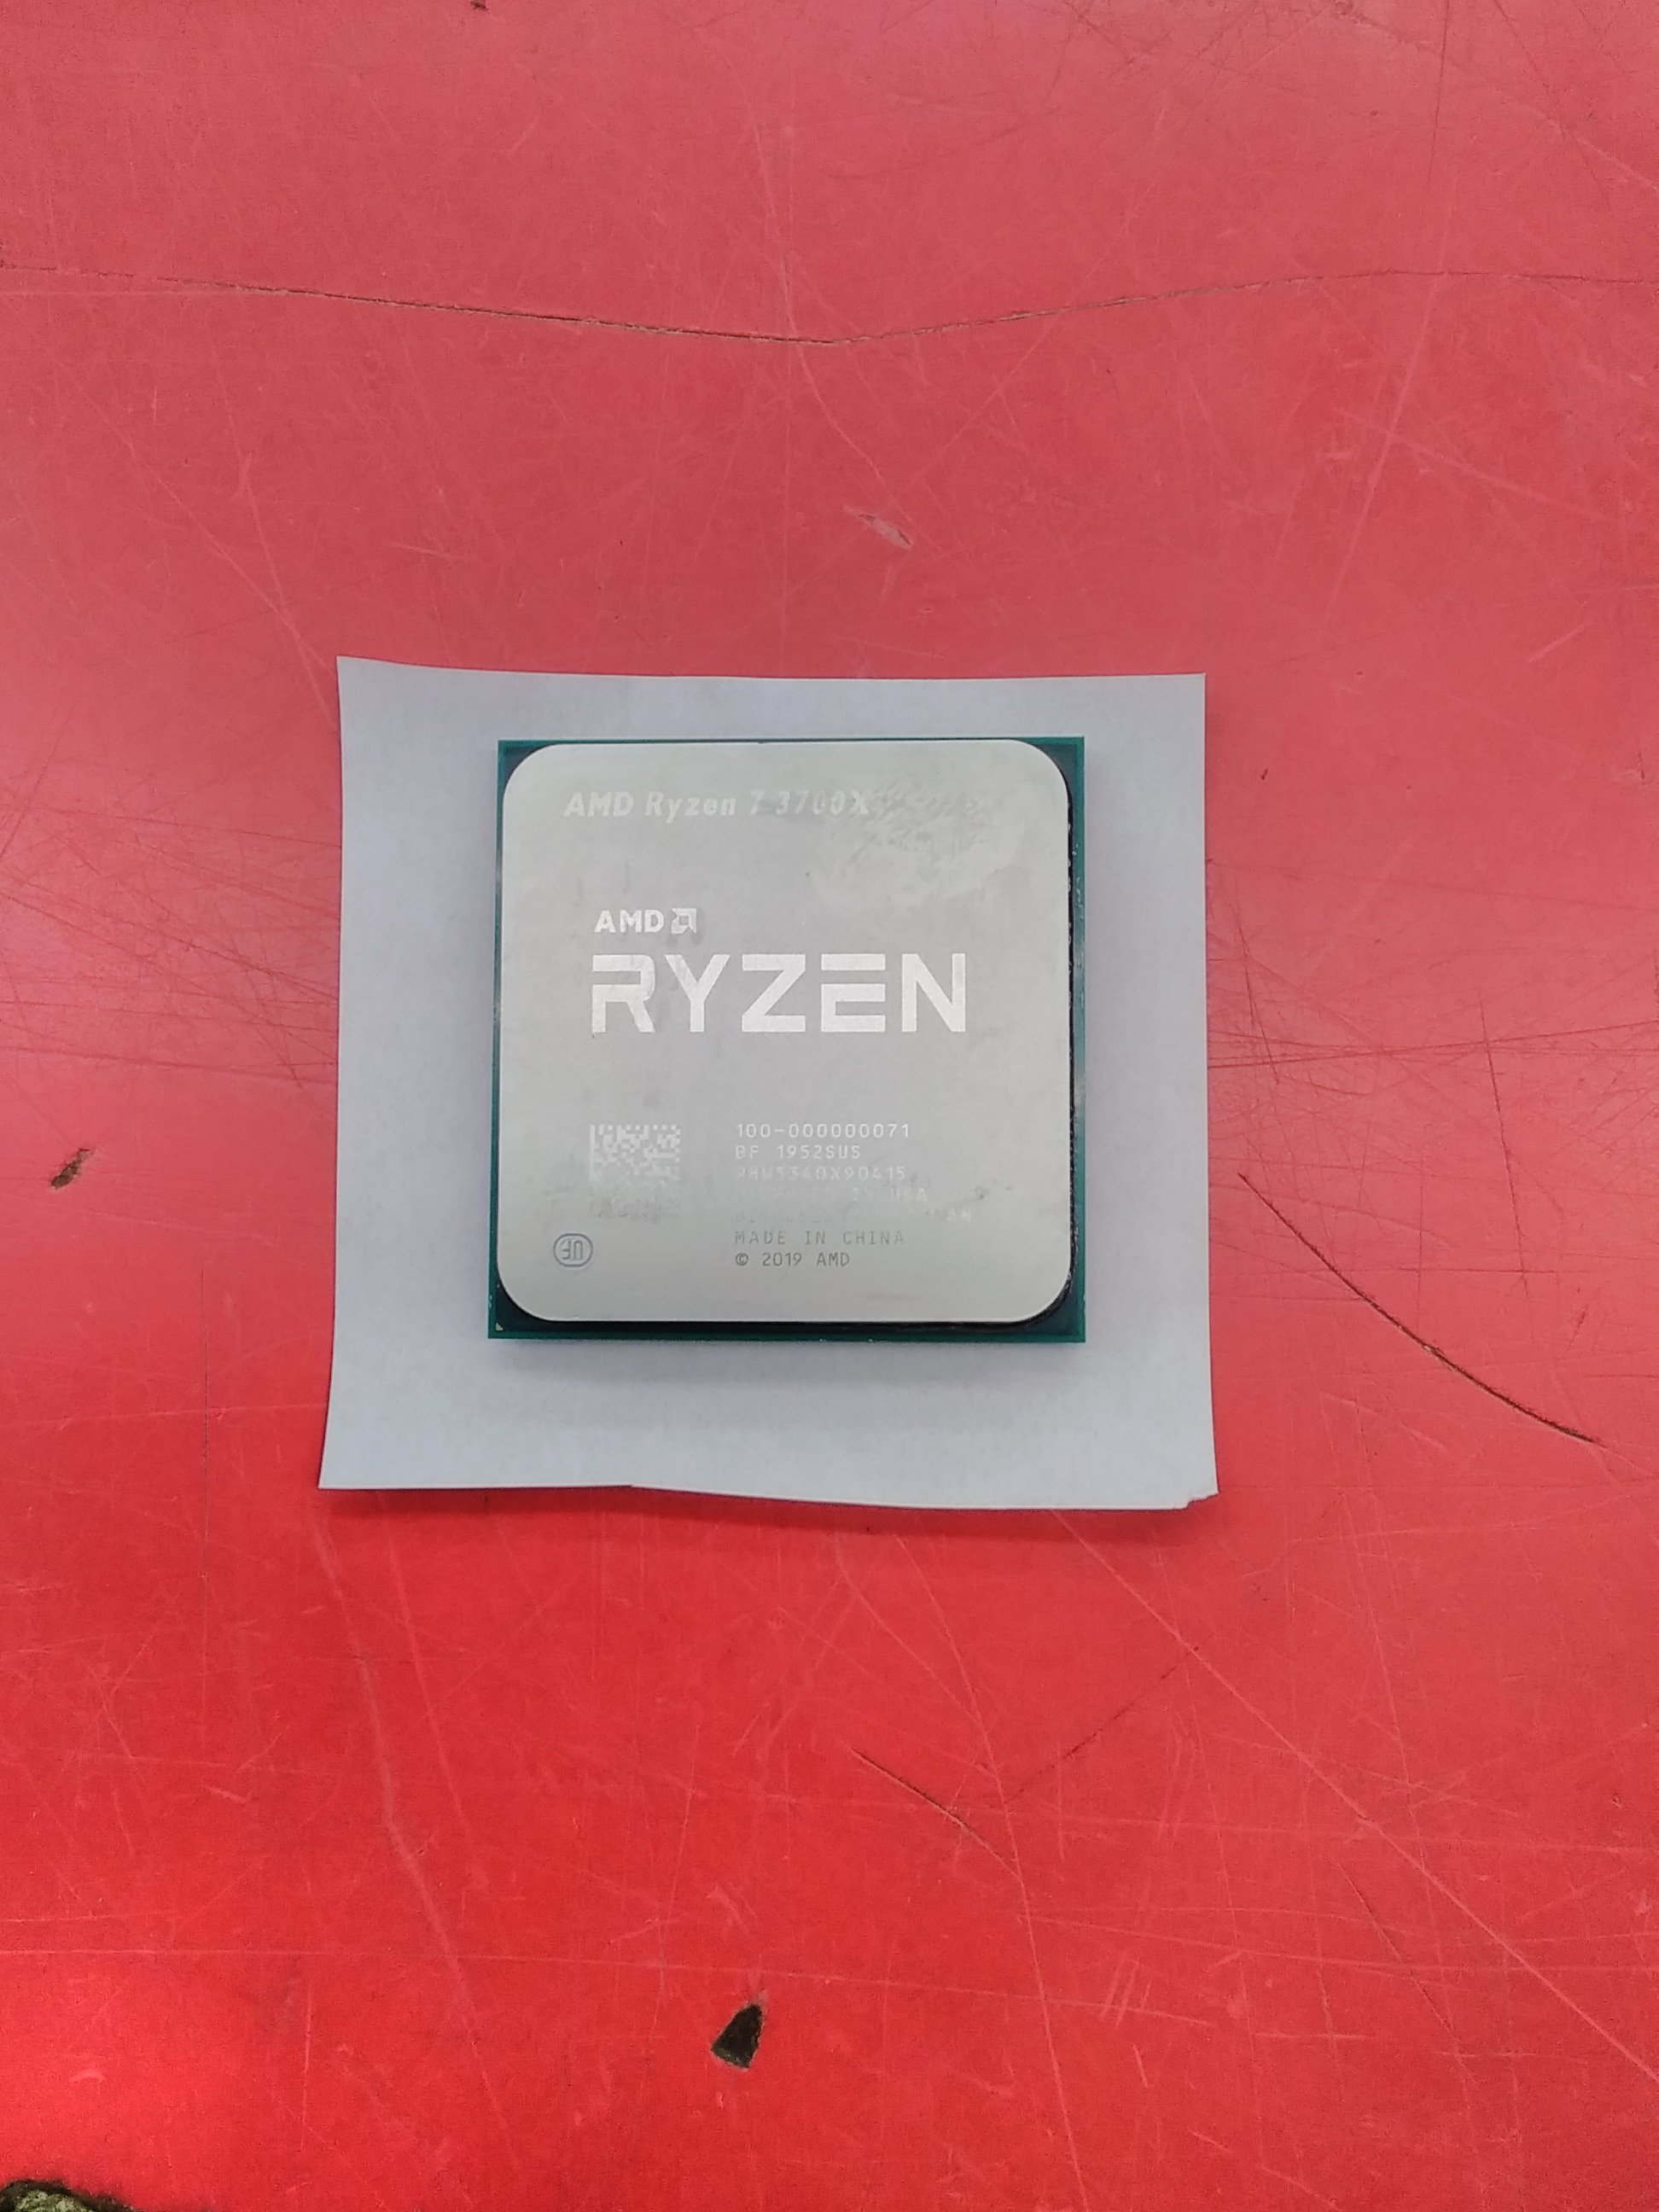 AMD/CPU RYZEN7 3700X|AMD